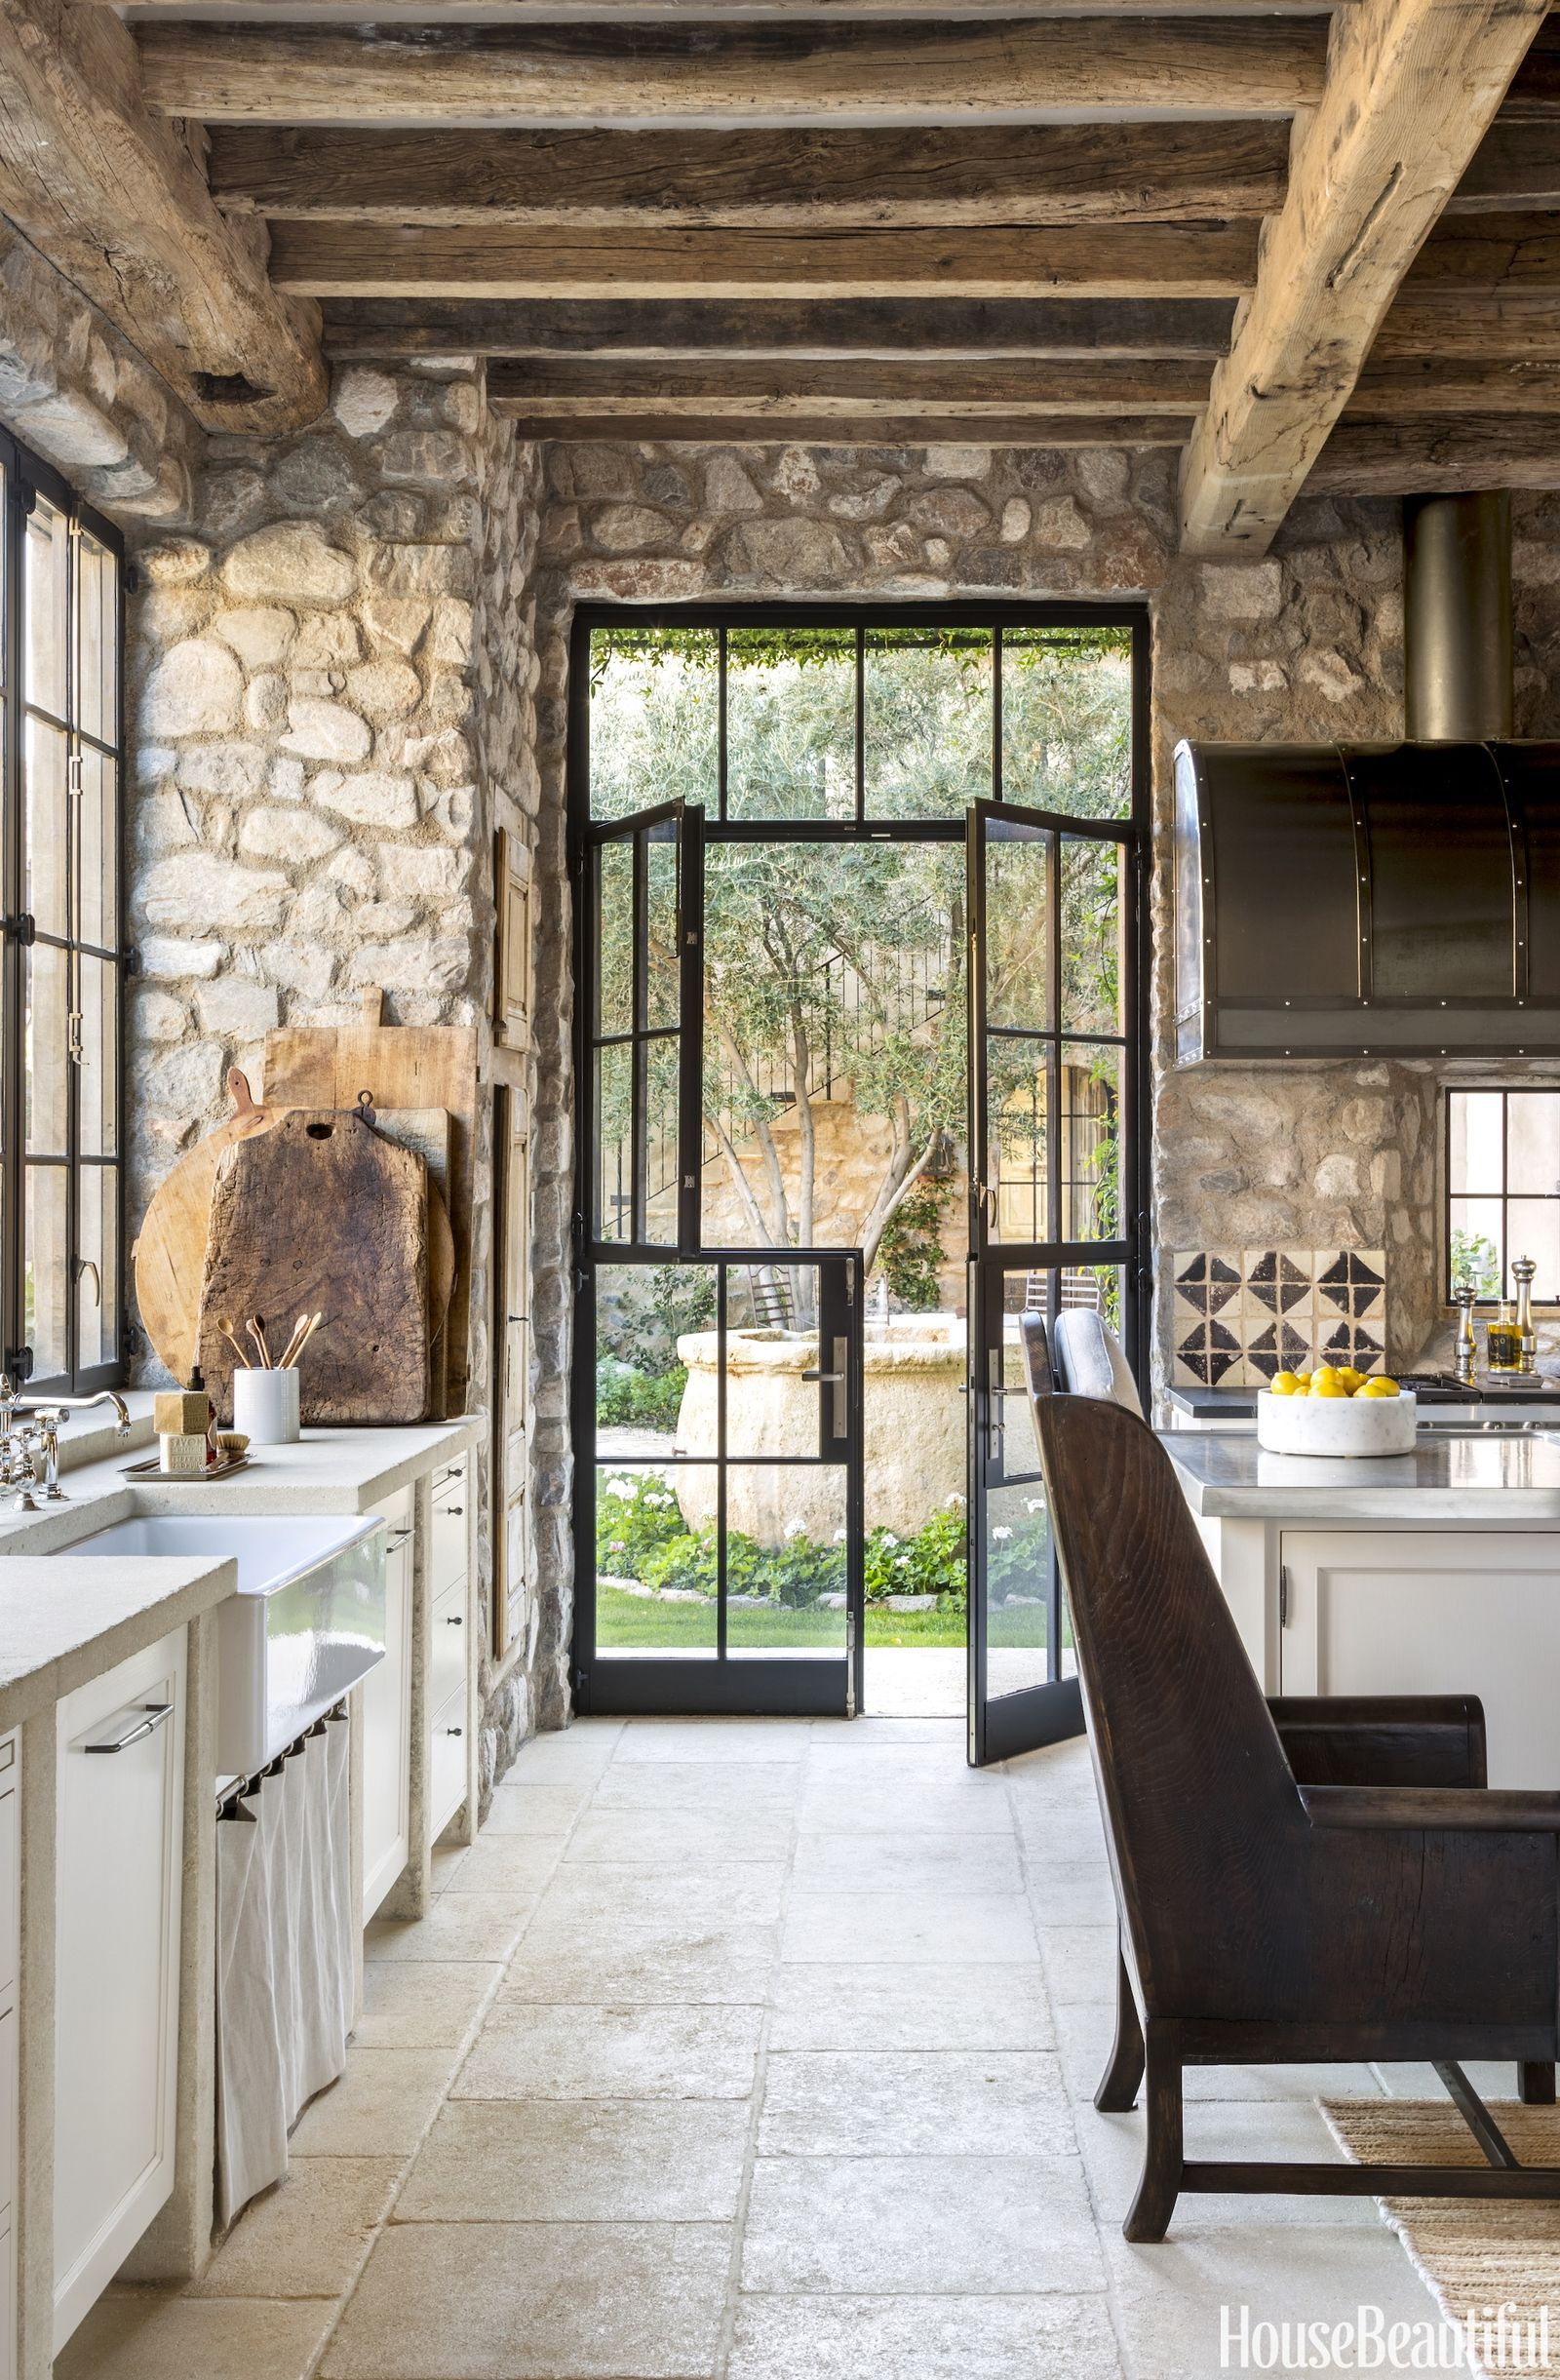 Cucina Rustica Meaning This Rustic Arizona Kitchen Feels Like A French Countryside